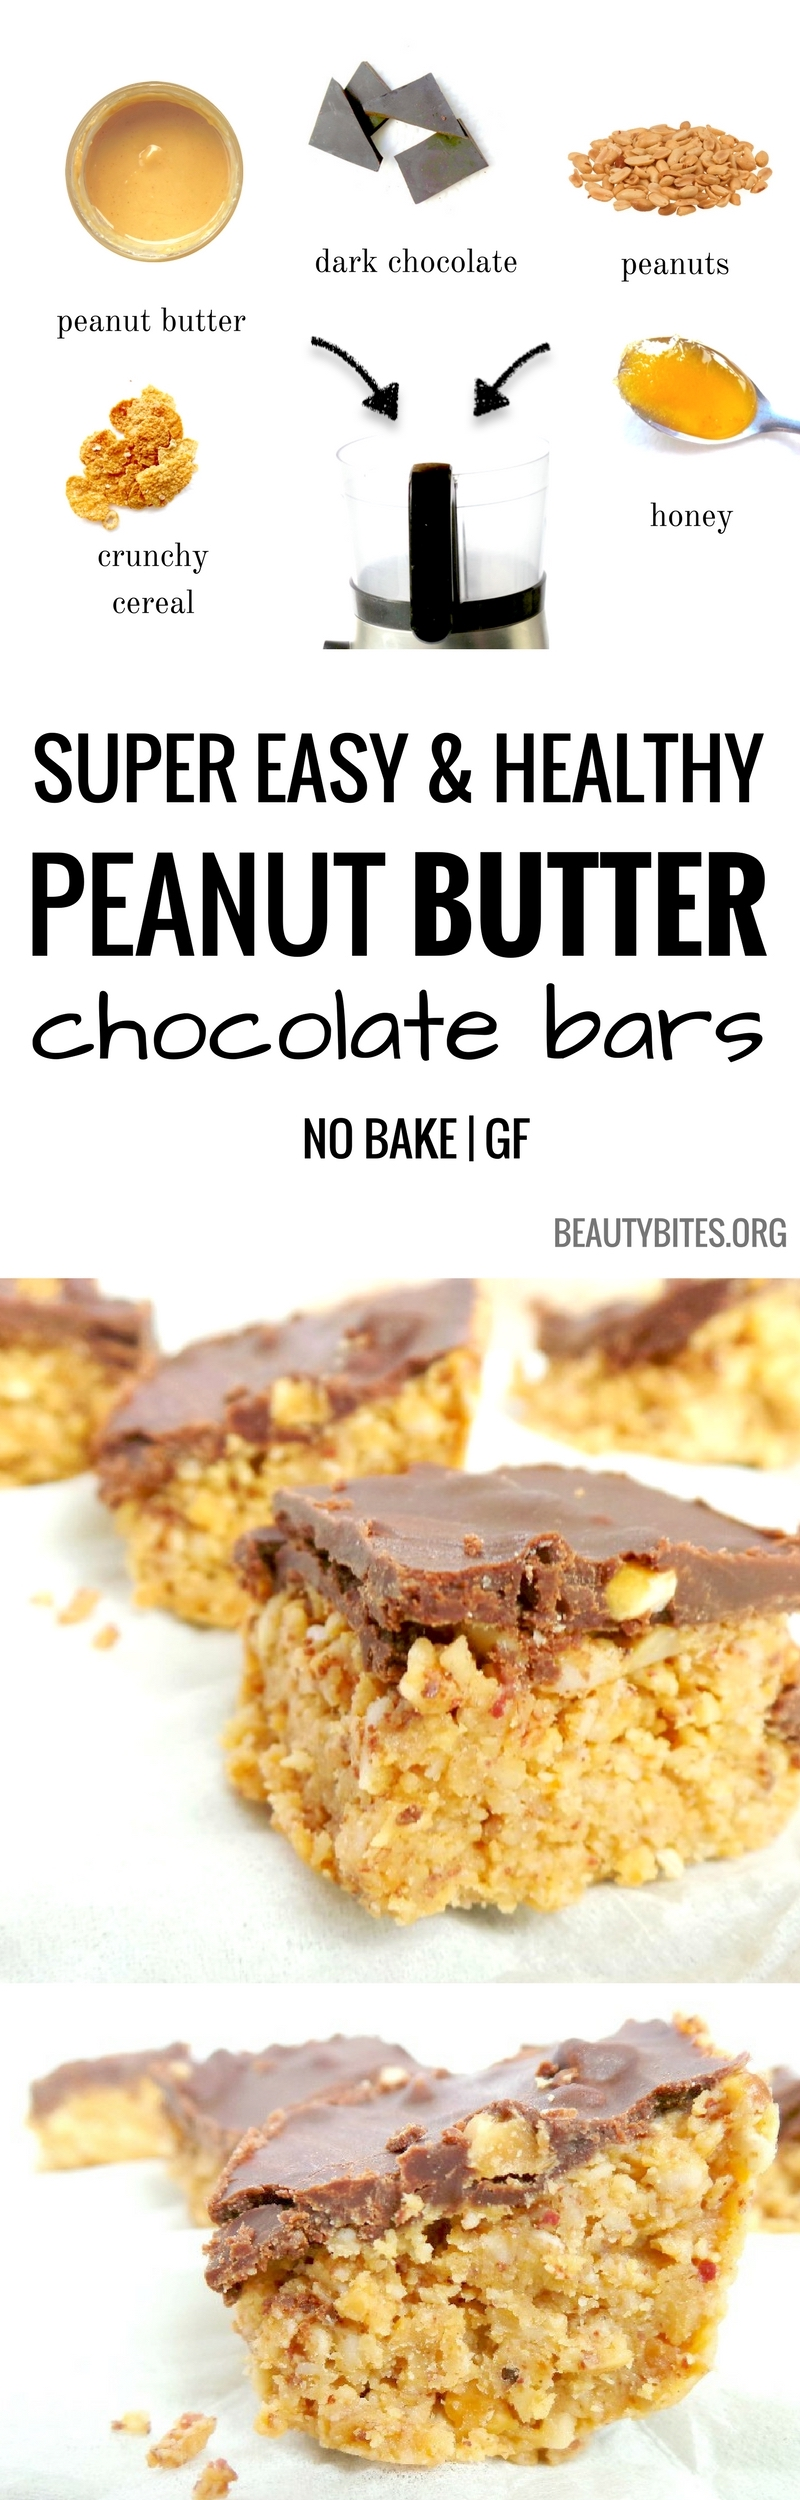 Chocolate peanut butter bites - an easy and delicious healthy treat! Loved these as a healthy snack or even as dessert - definitely satisfied my chocolate AND peanut butter cravings!   easy healthy snacks   www.beautybites.org